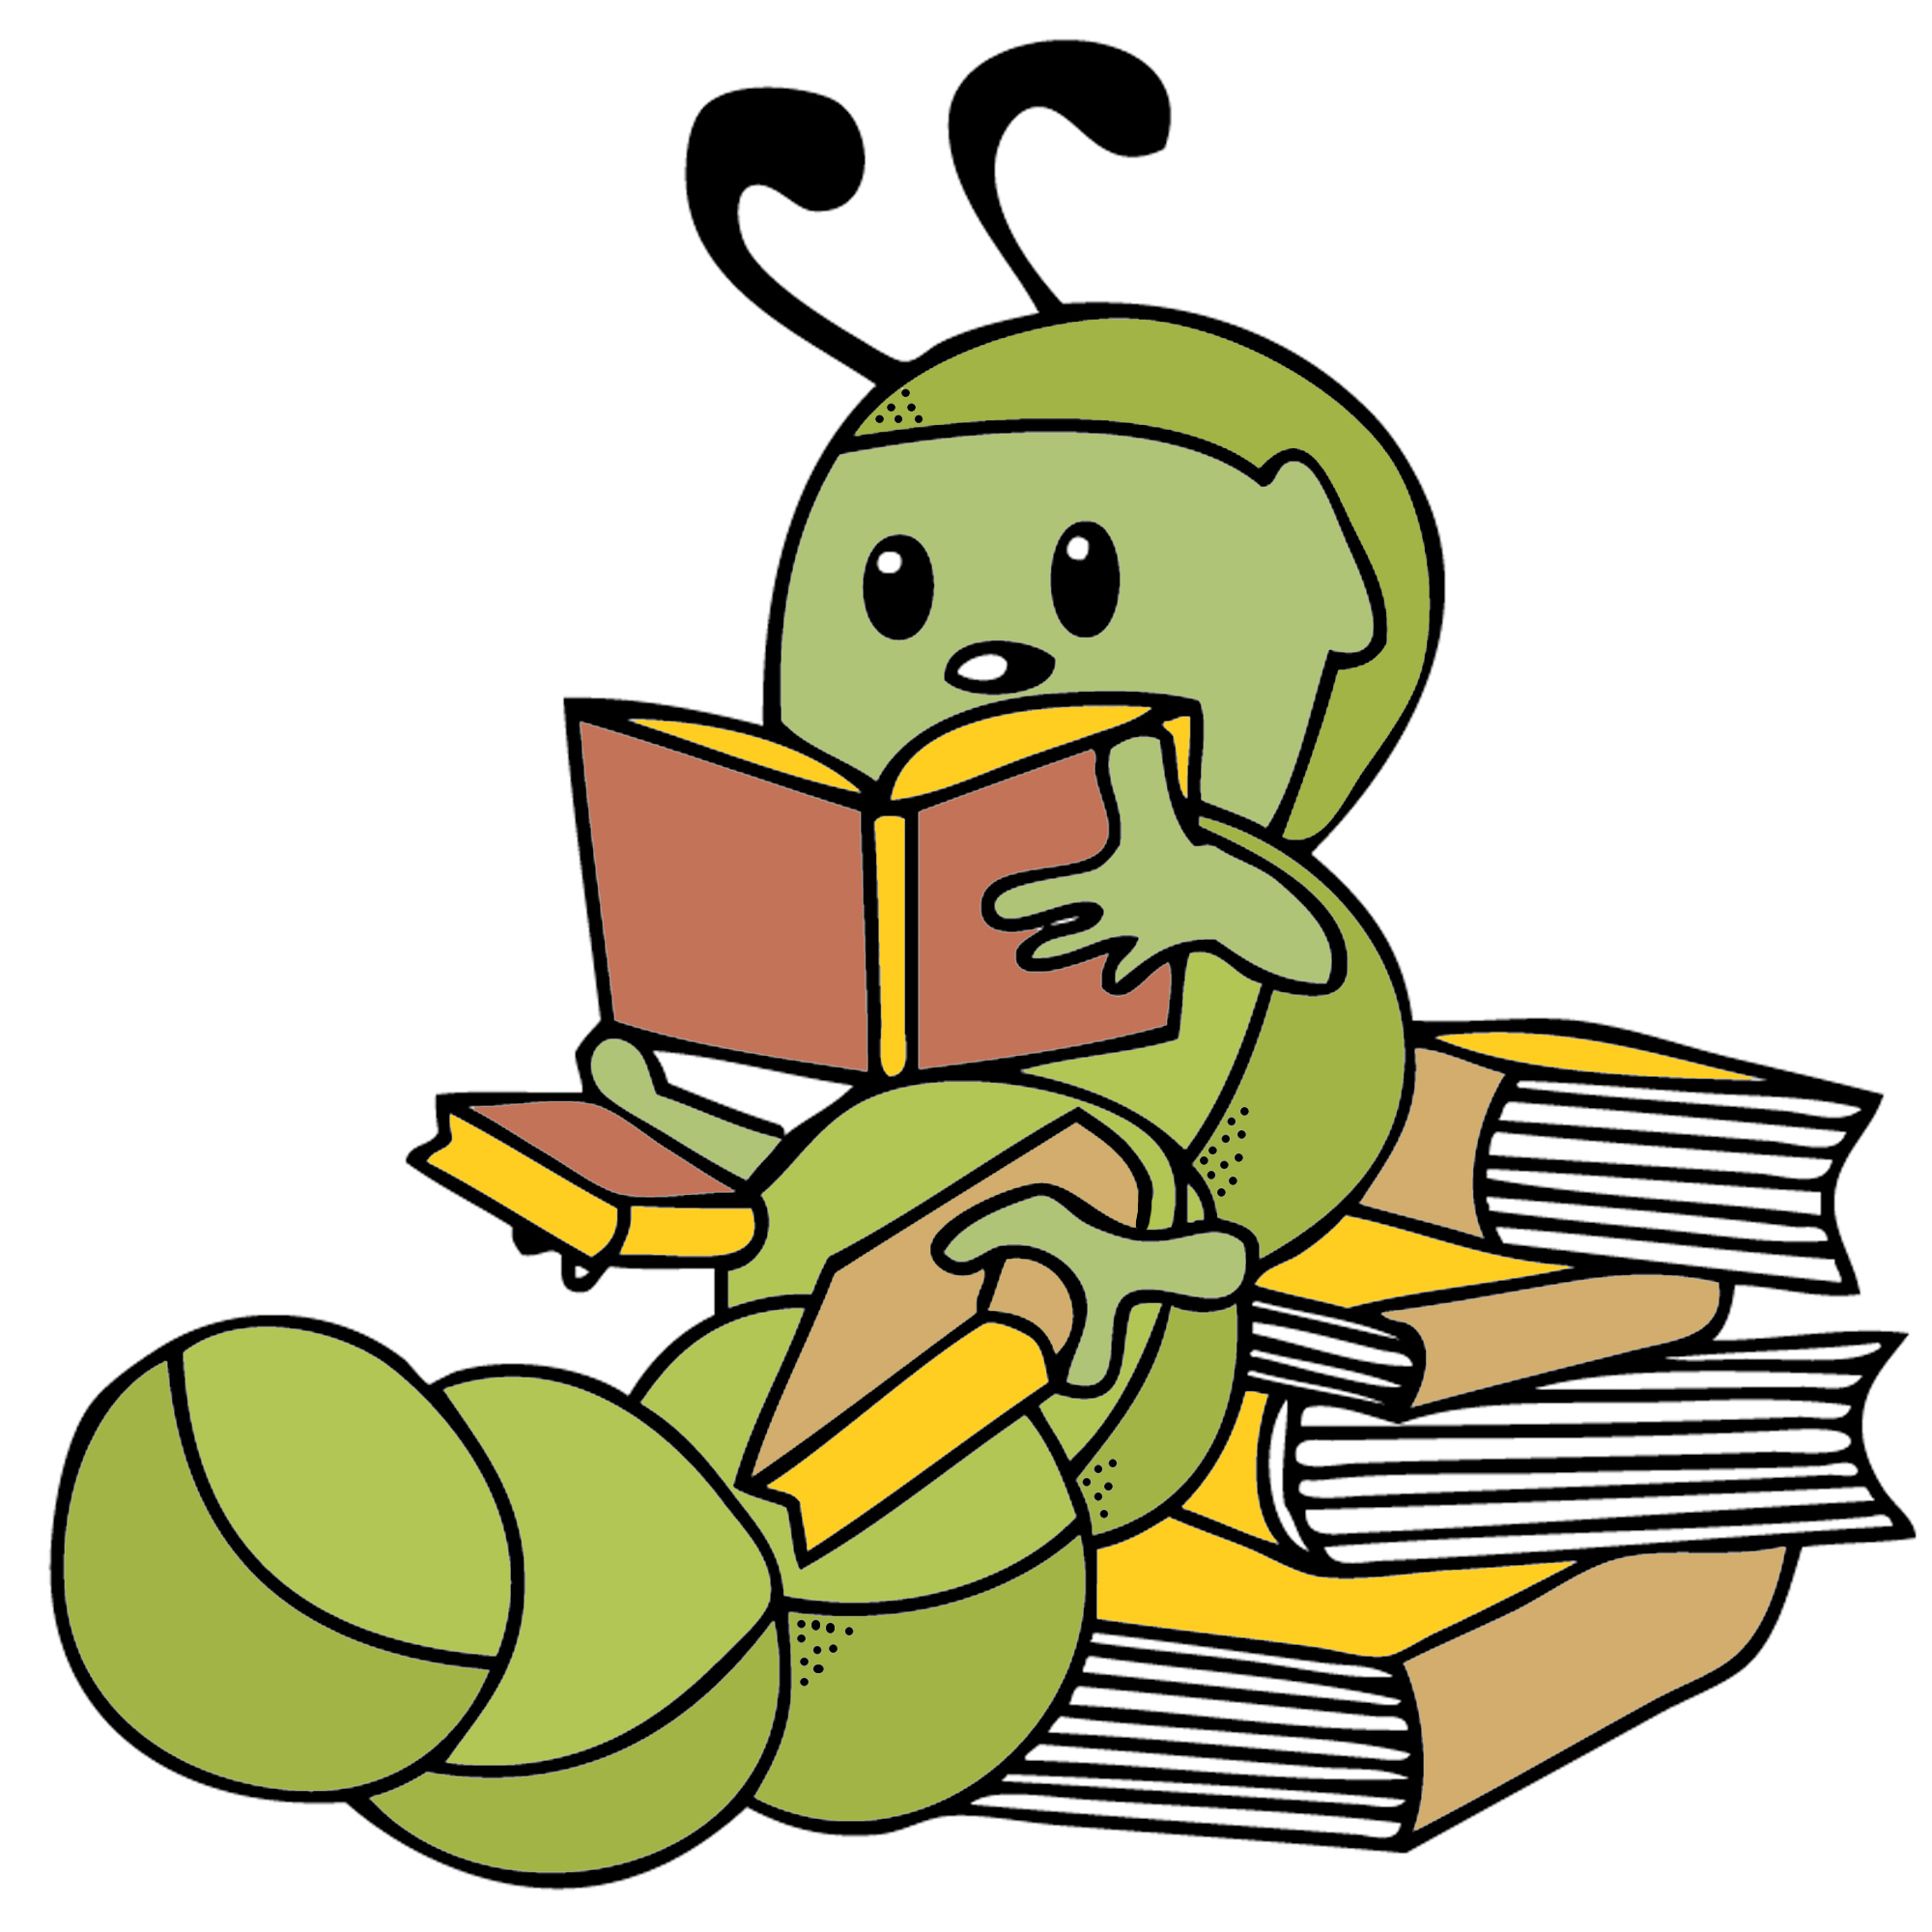 Worm clipart bookworm Bookworm images Free worm Clipart